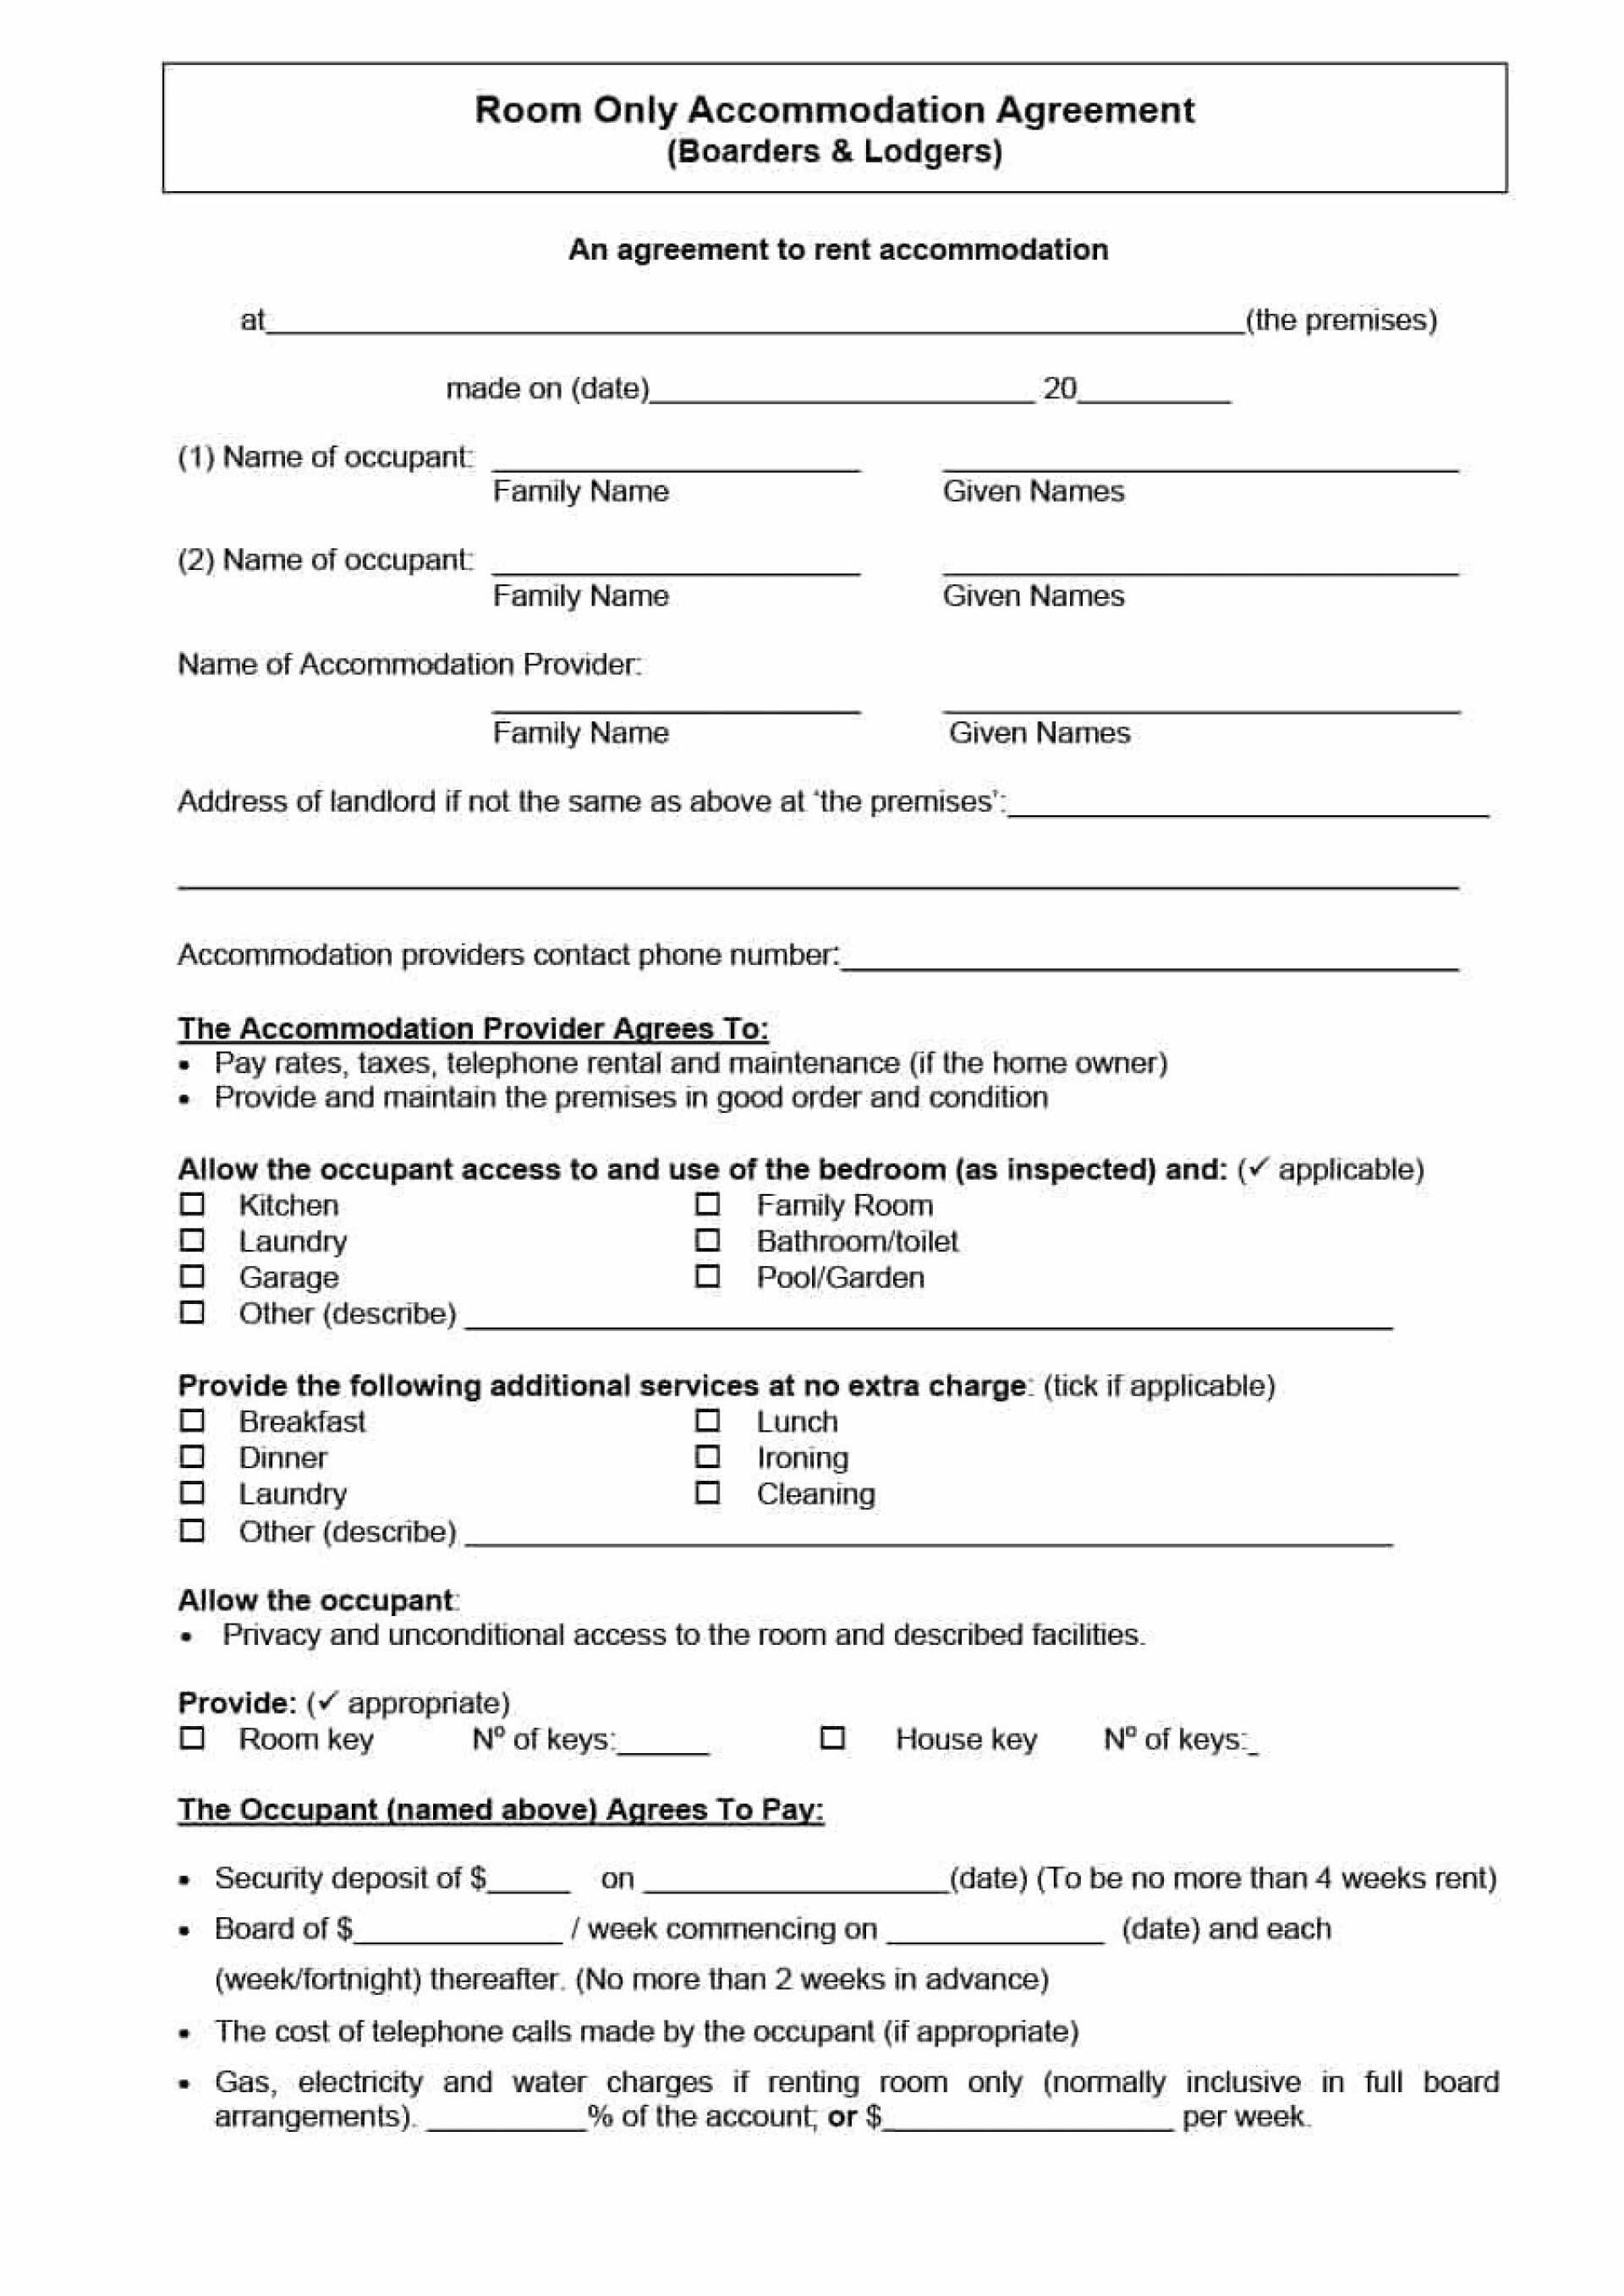 003 Sensational Generic Room Rental Agreement Free Inspiration  Printable1920